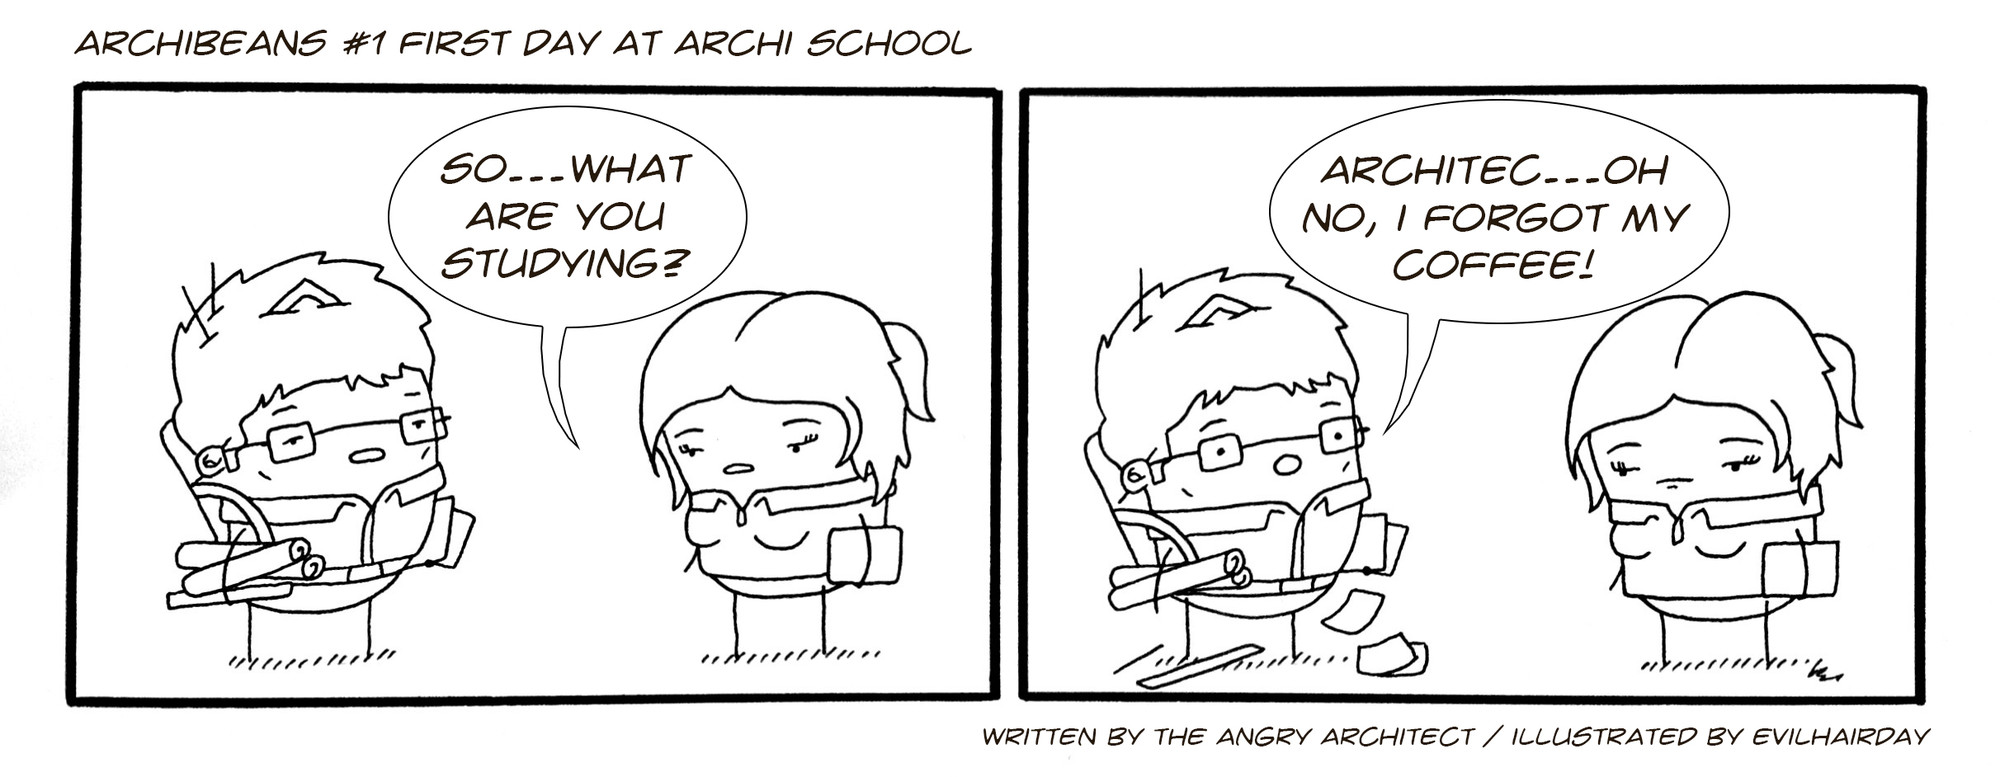 Architect Student archibeans comic grants a light-hearted glimpse into life as an